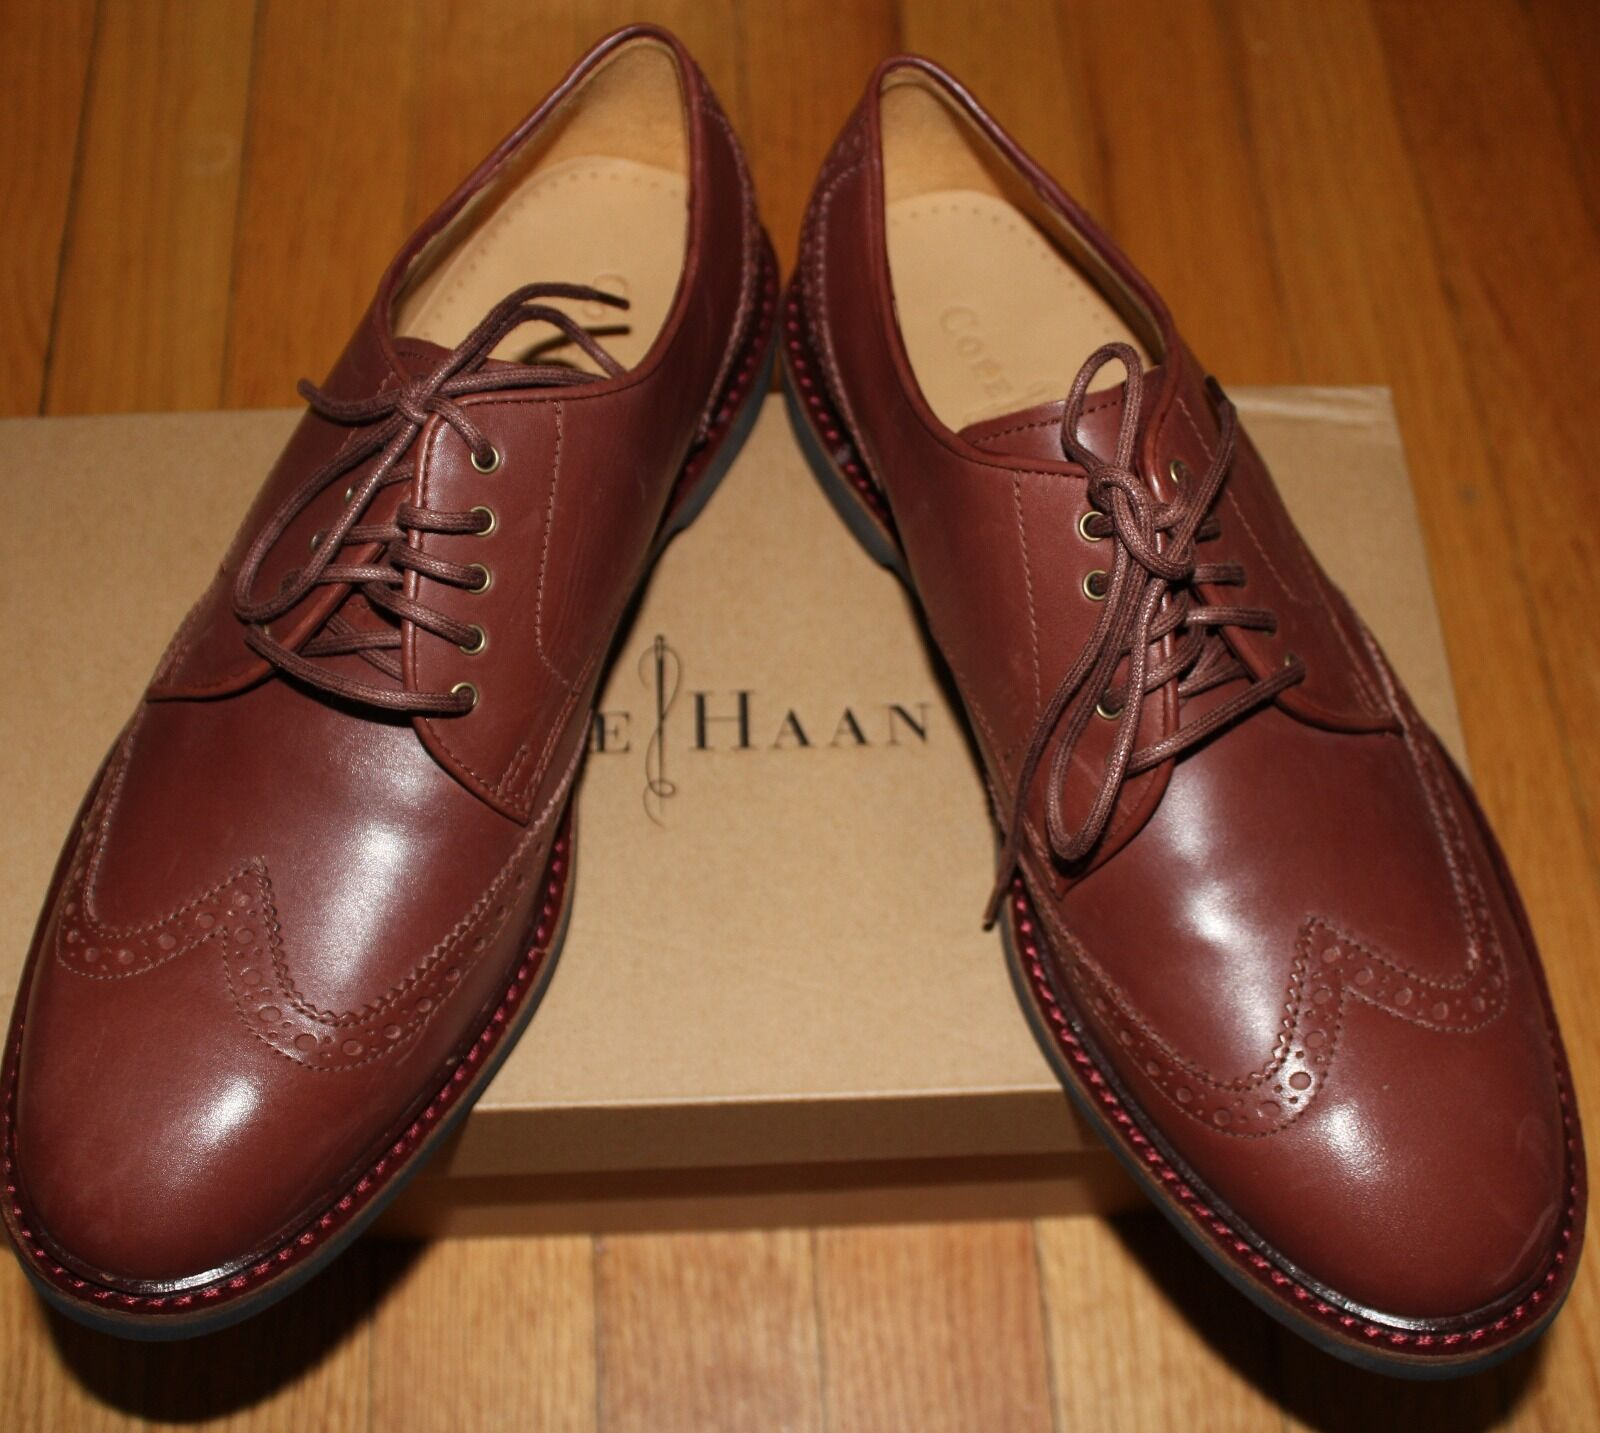 198 COLE HAAN CINNAMON WINGTIP LEATHER LACE UP SHOES SZ 8M